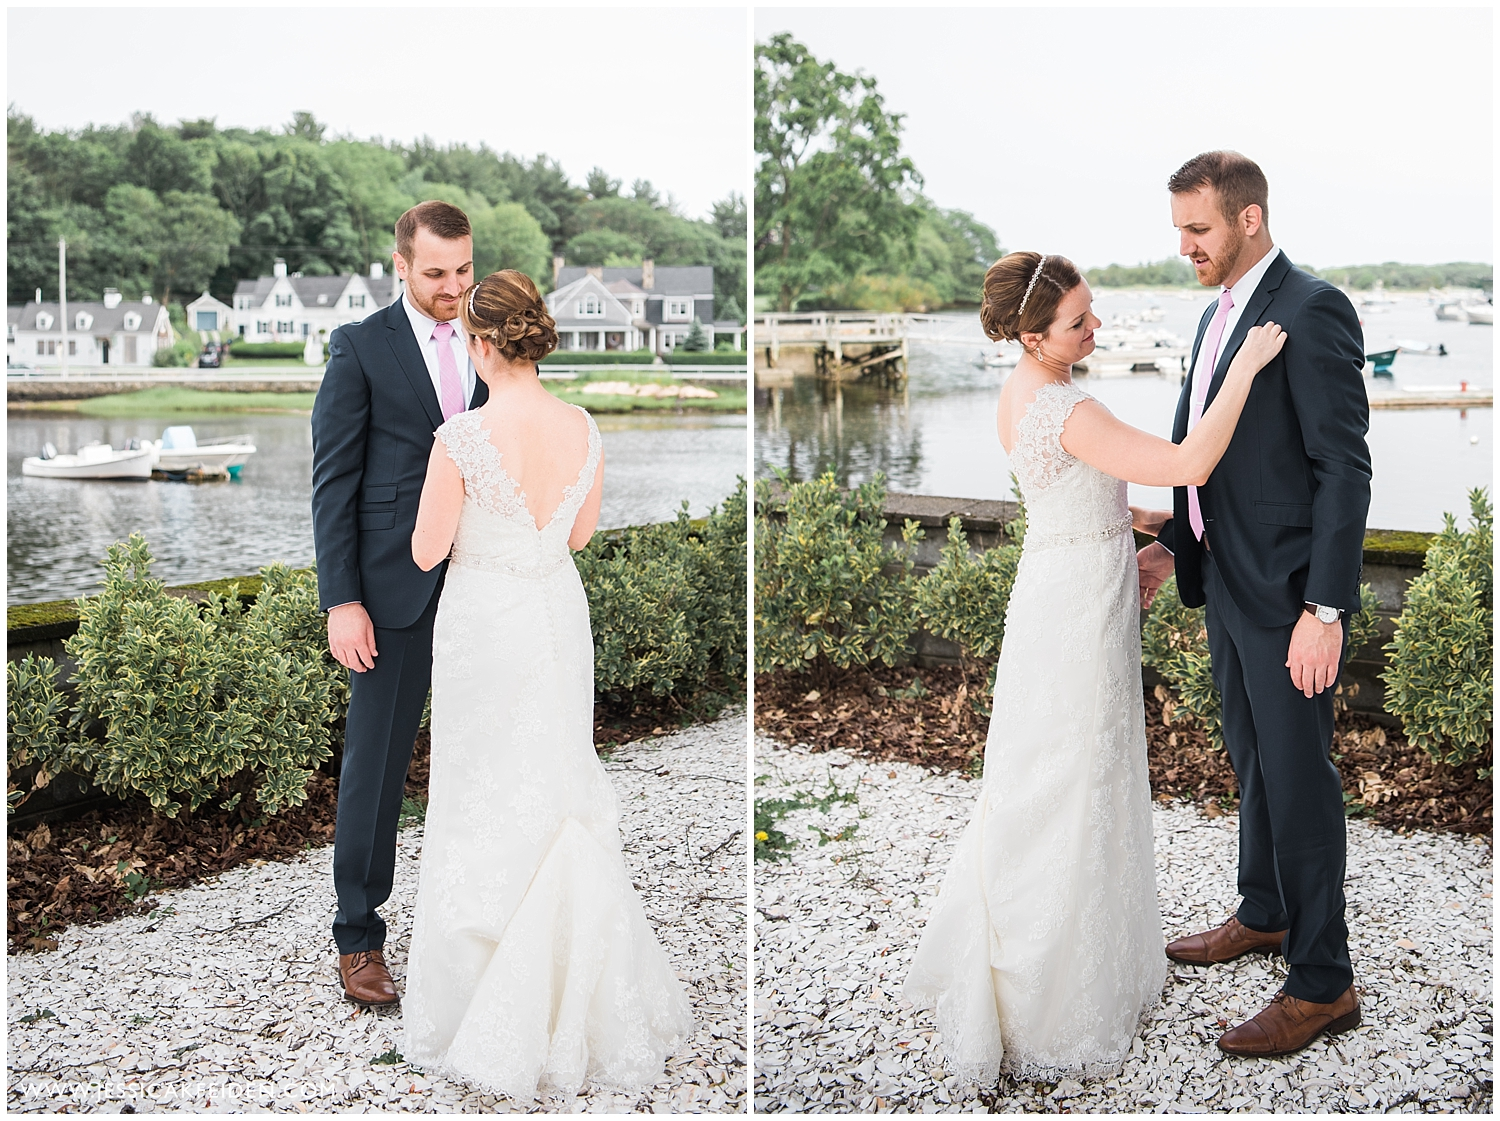 Jessica K Feiden Photography- Cohasset Harbor Inn Wedding Photographer_0022.jpg